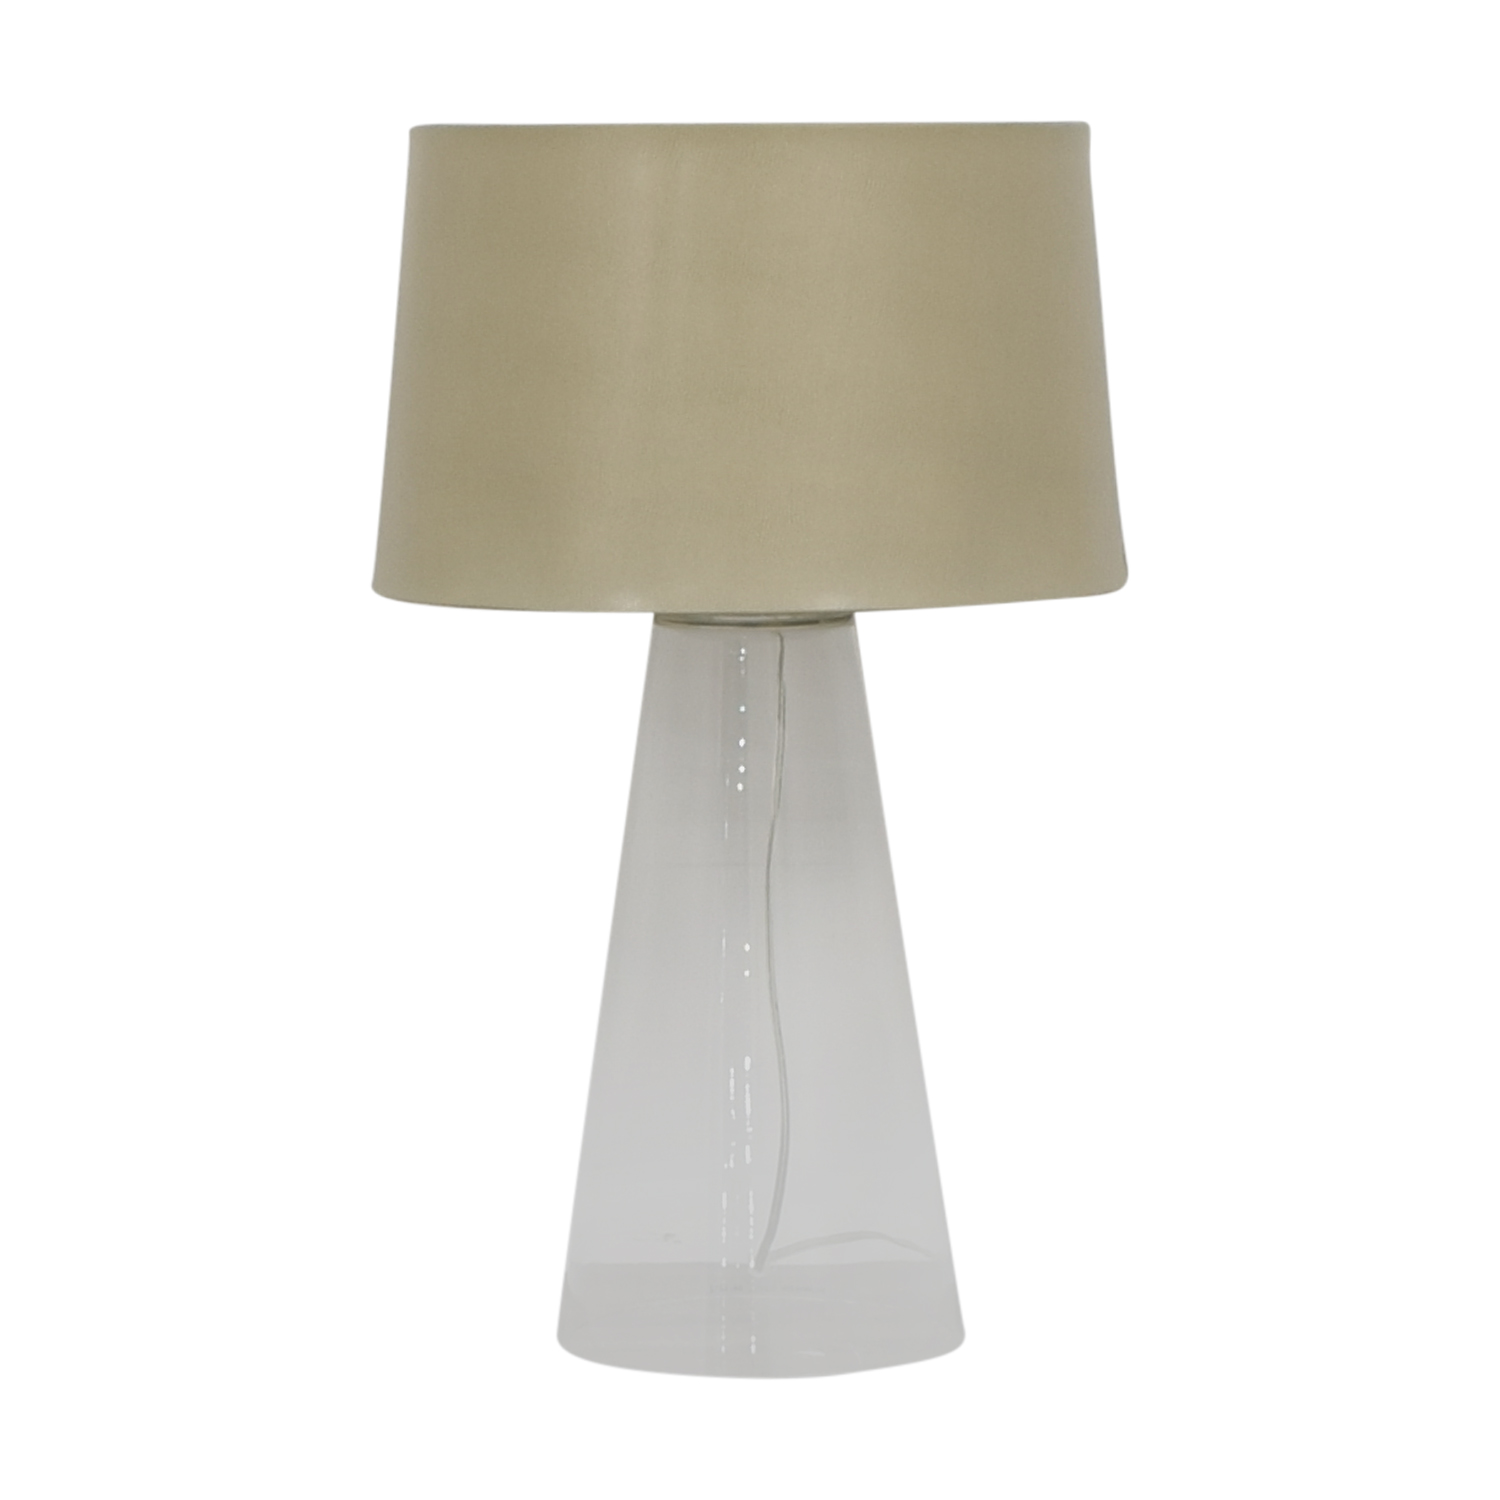 Crate & Barrel Crate & Barrel Table Lamp dimensions